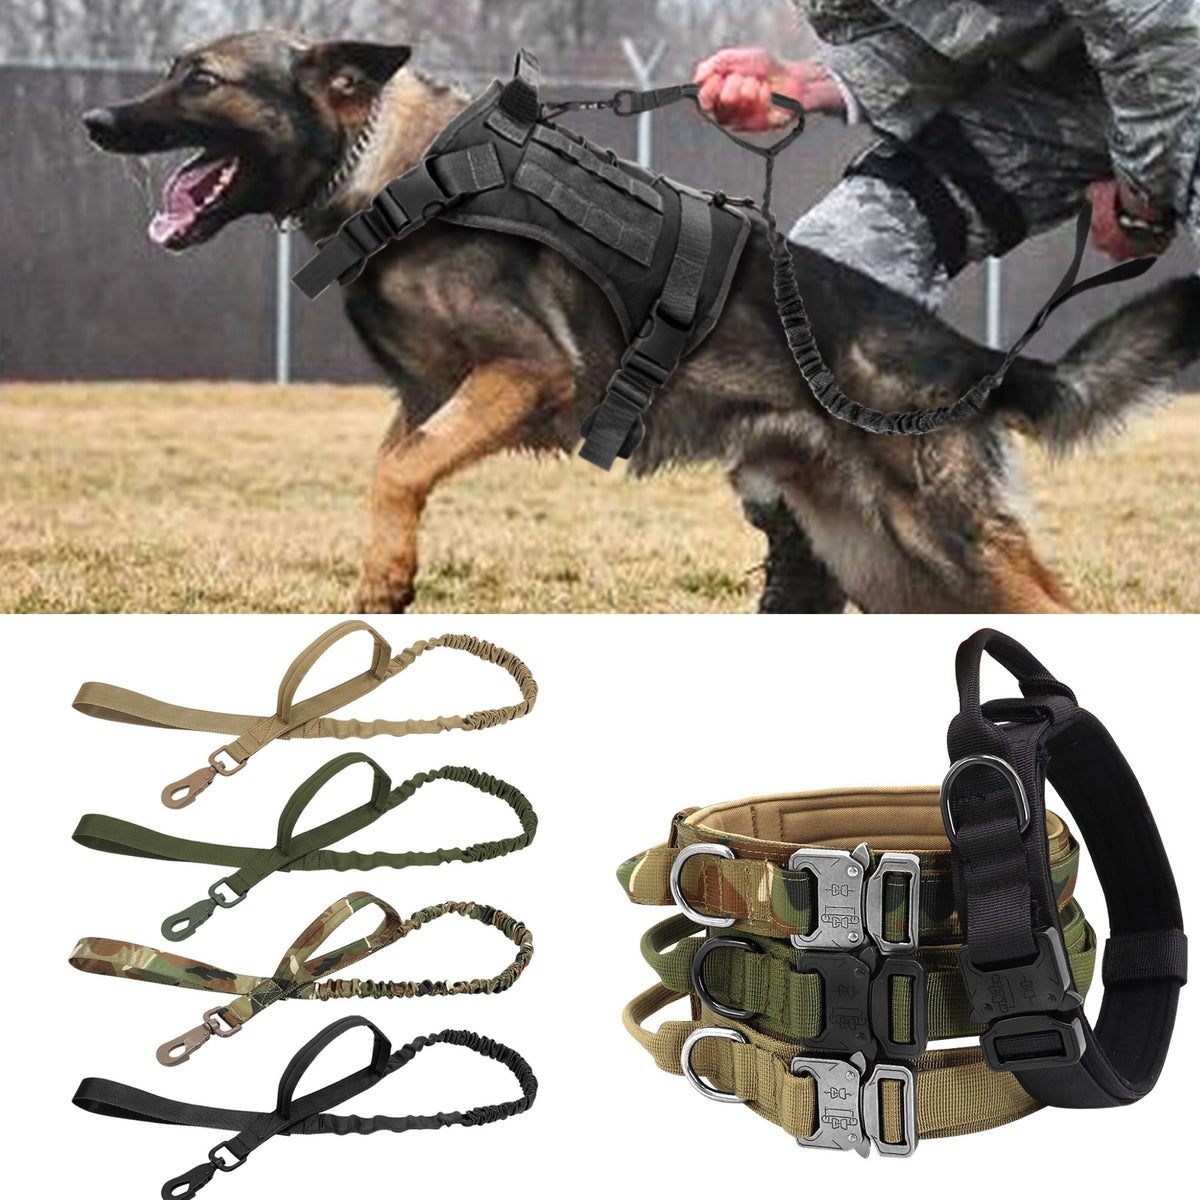 Image of KMP Dog Harness, Collar, Lead Package